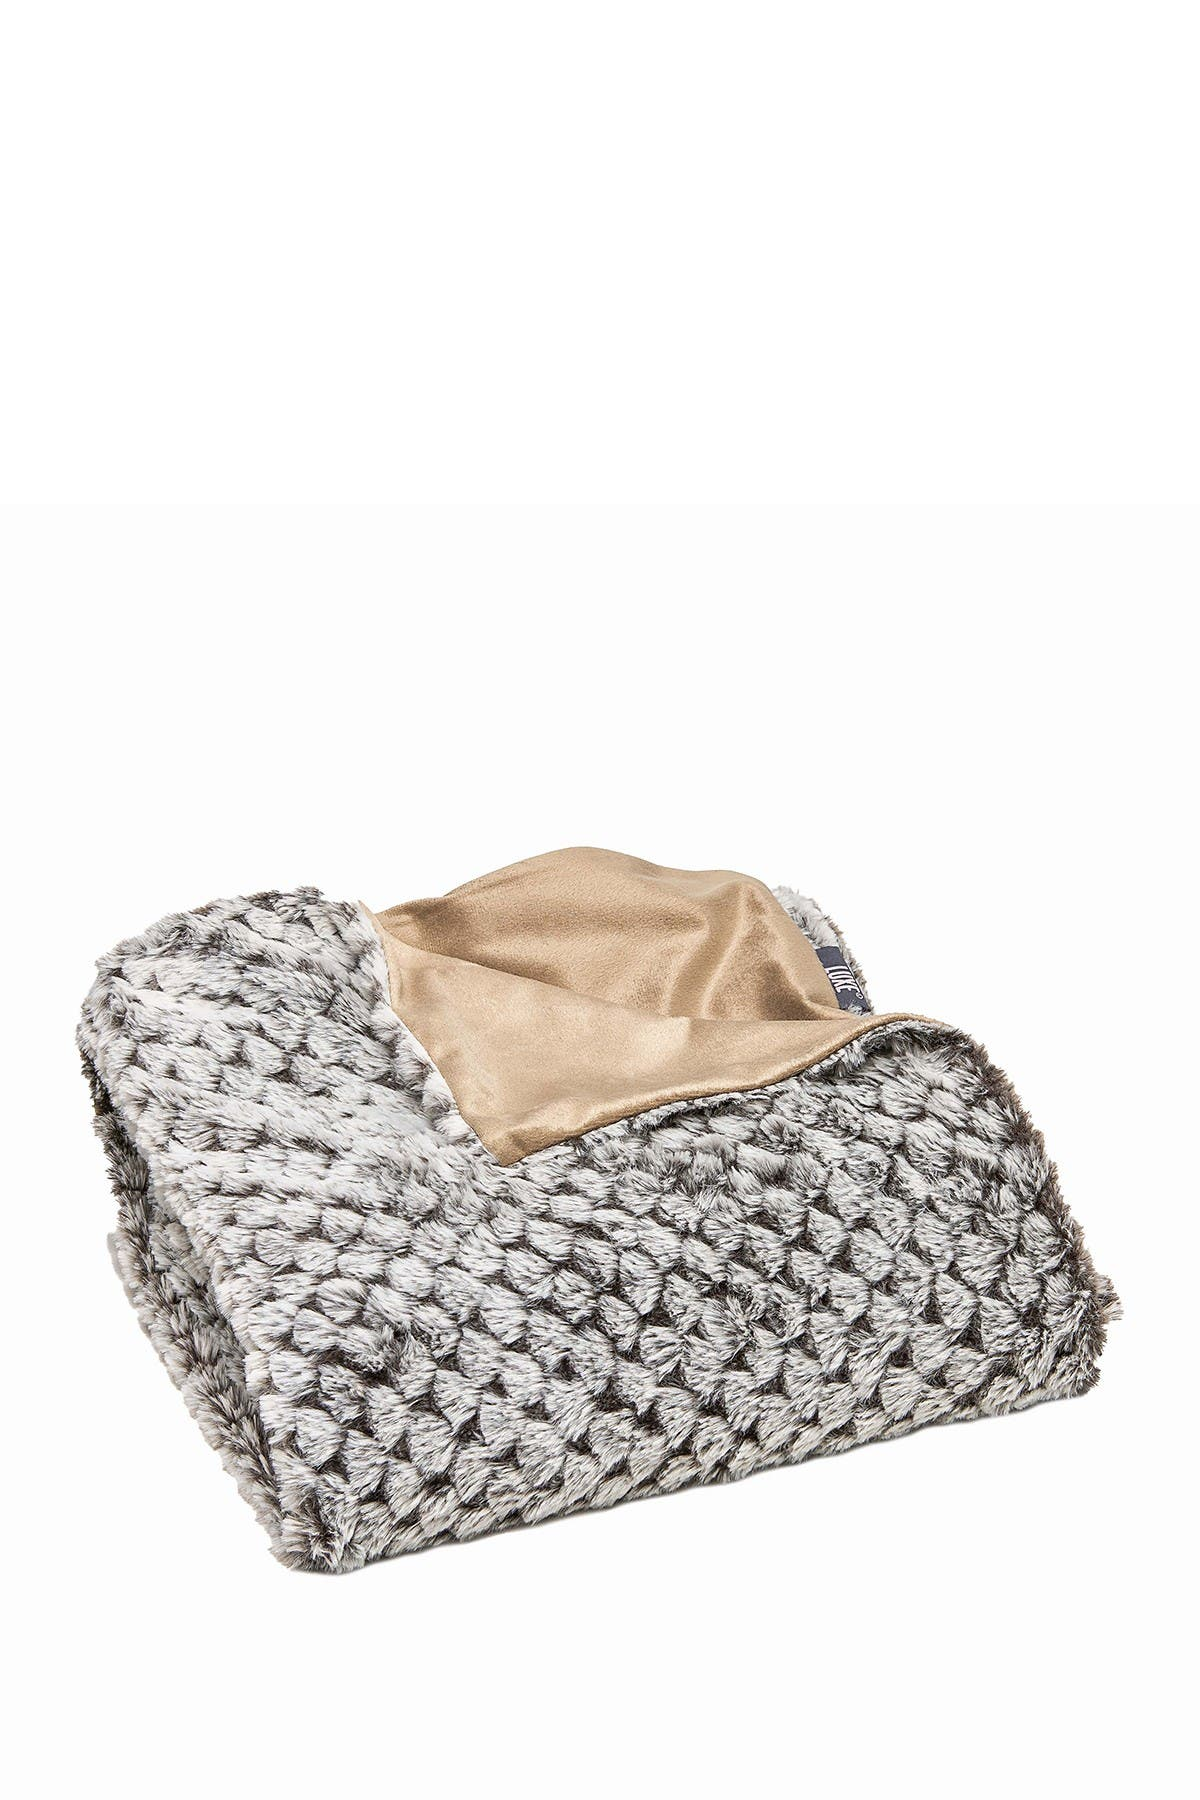 "Image of LUXE Faux Fur Throw - 50"" x 60"" - Chinchilla"